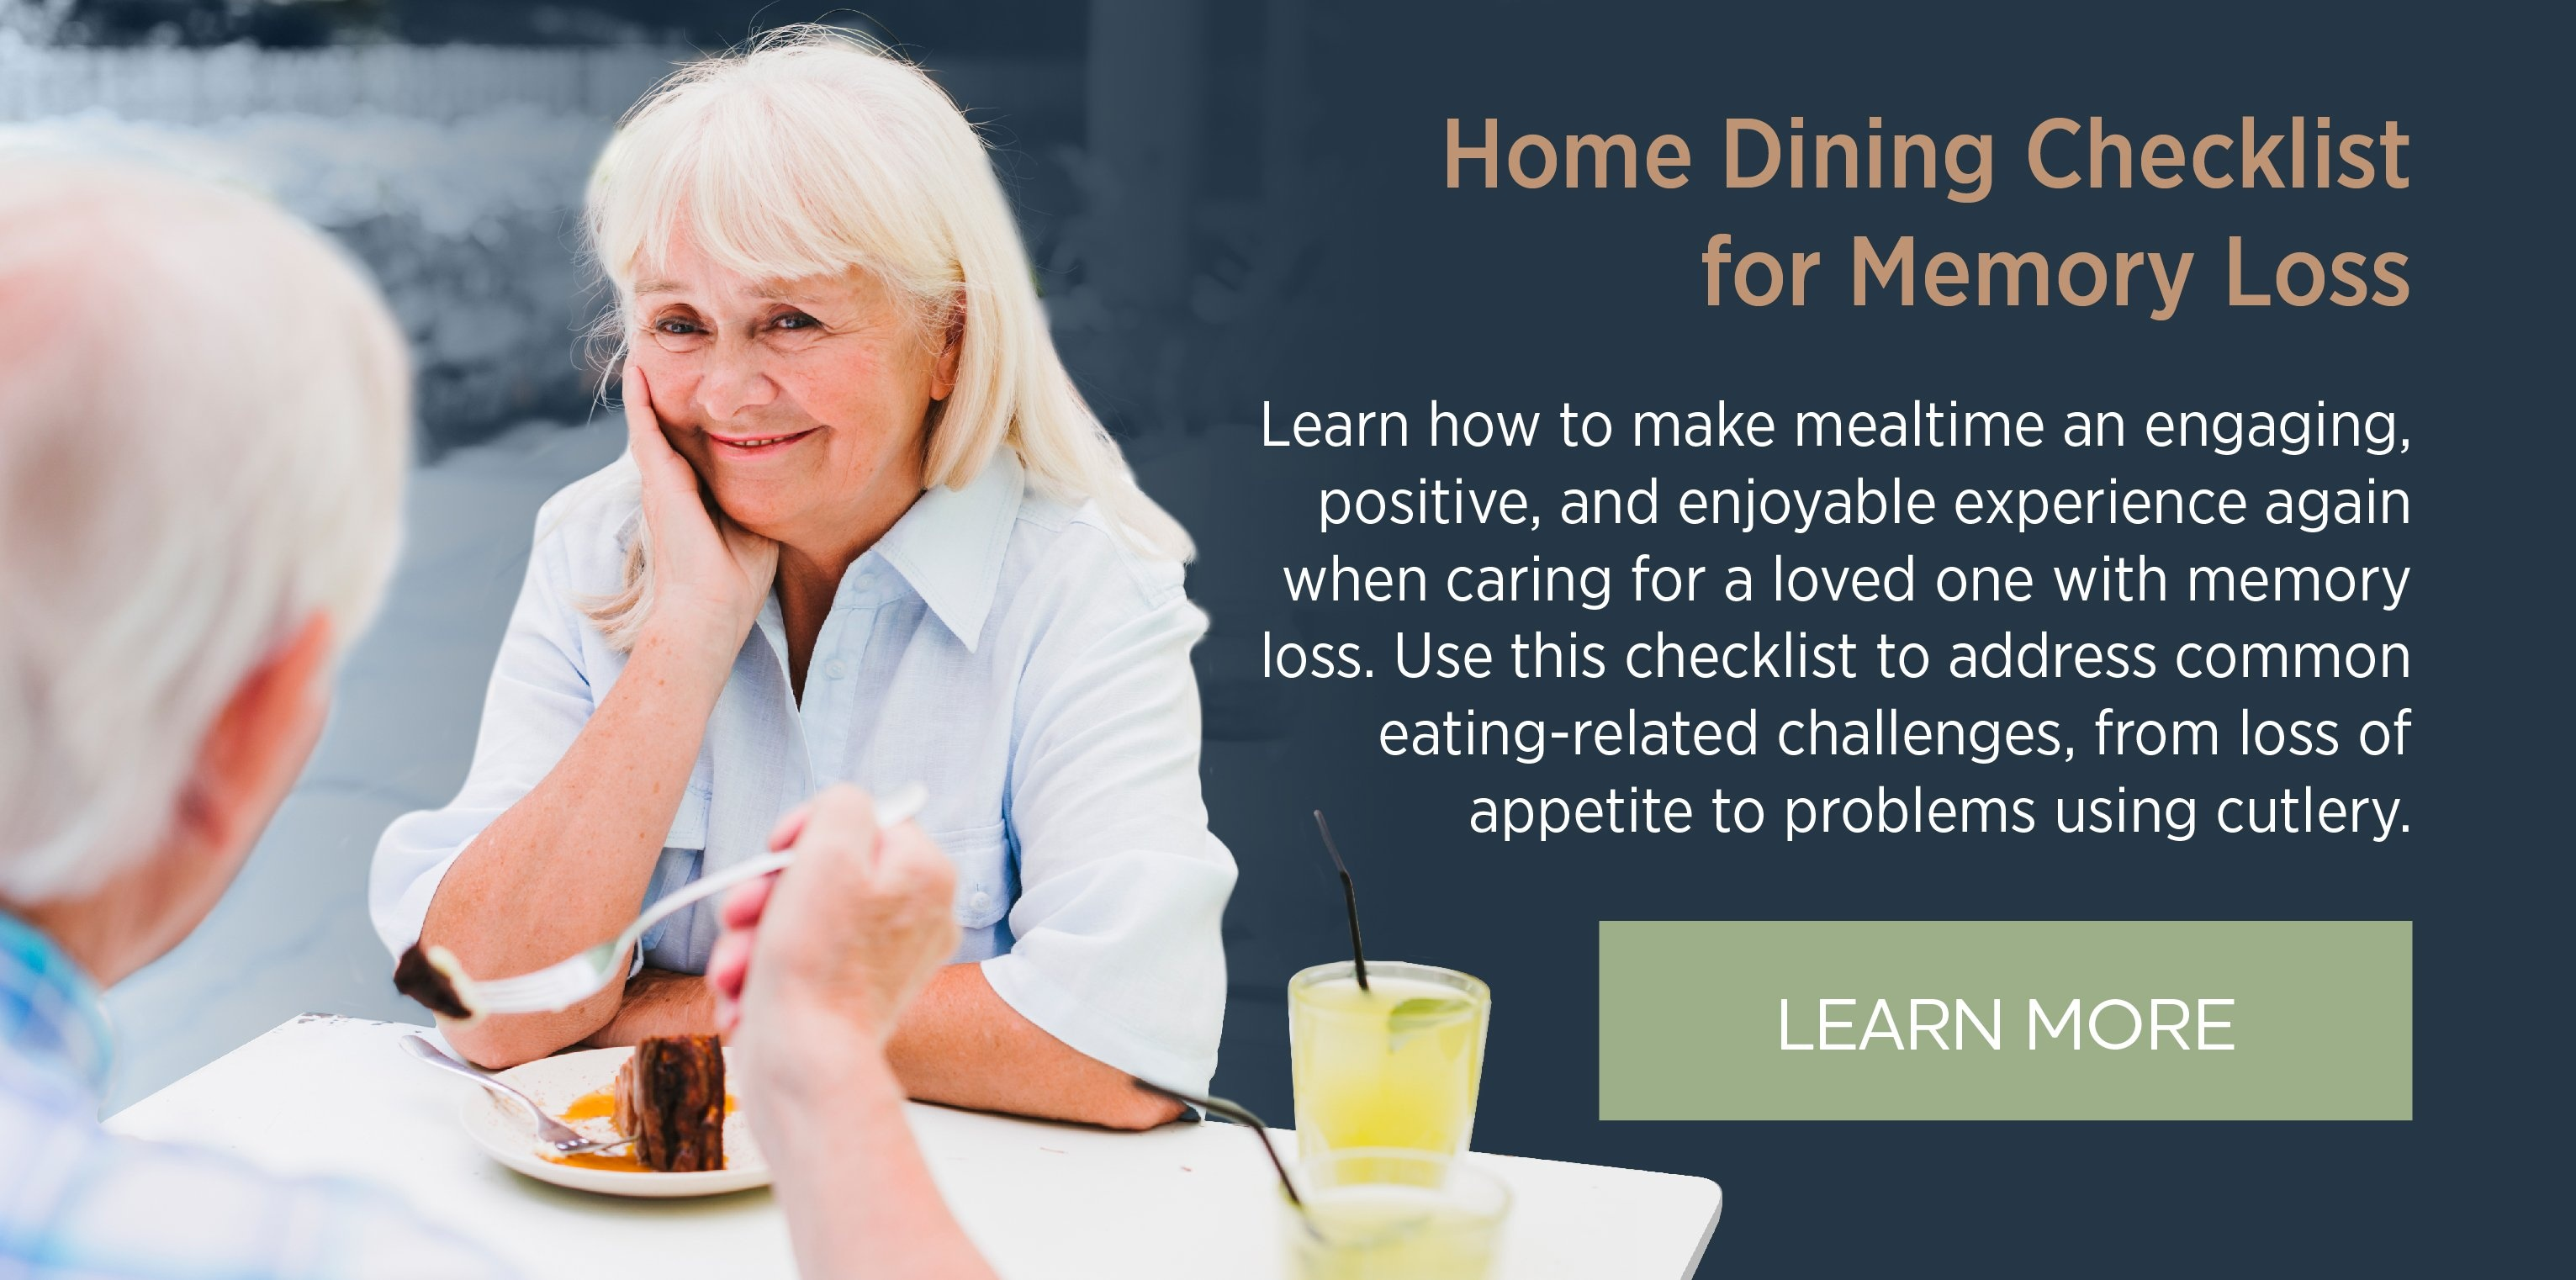 Home Dining Checklist for Memory Loss